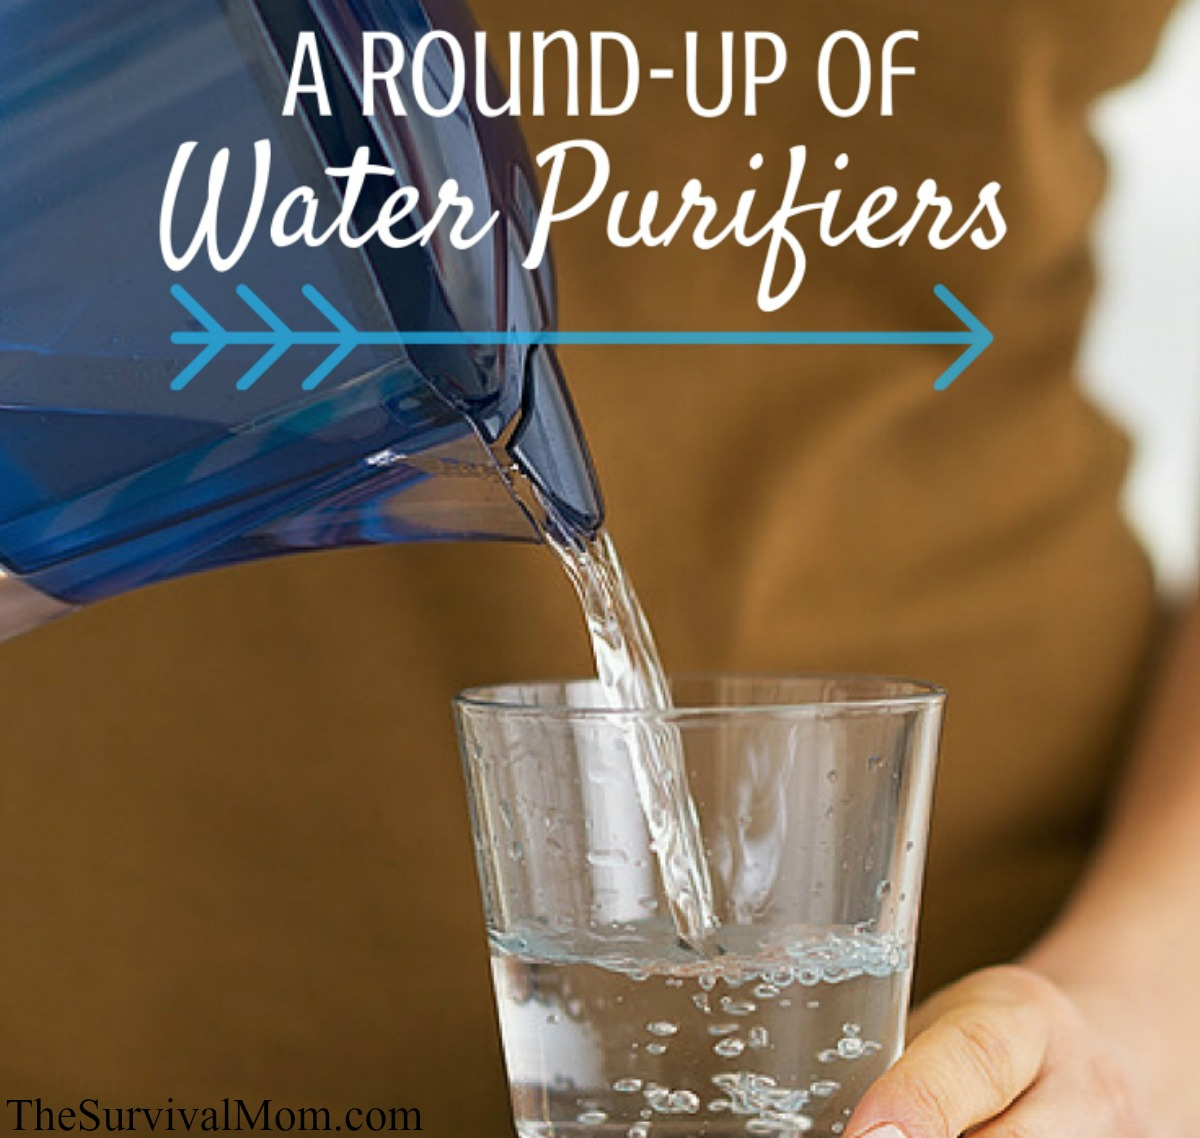 9d0c8907678 A Round-Up of Water Purifiers - Survival Mom